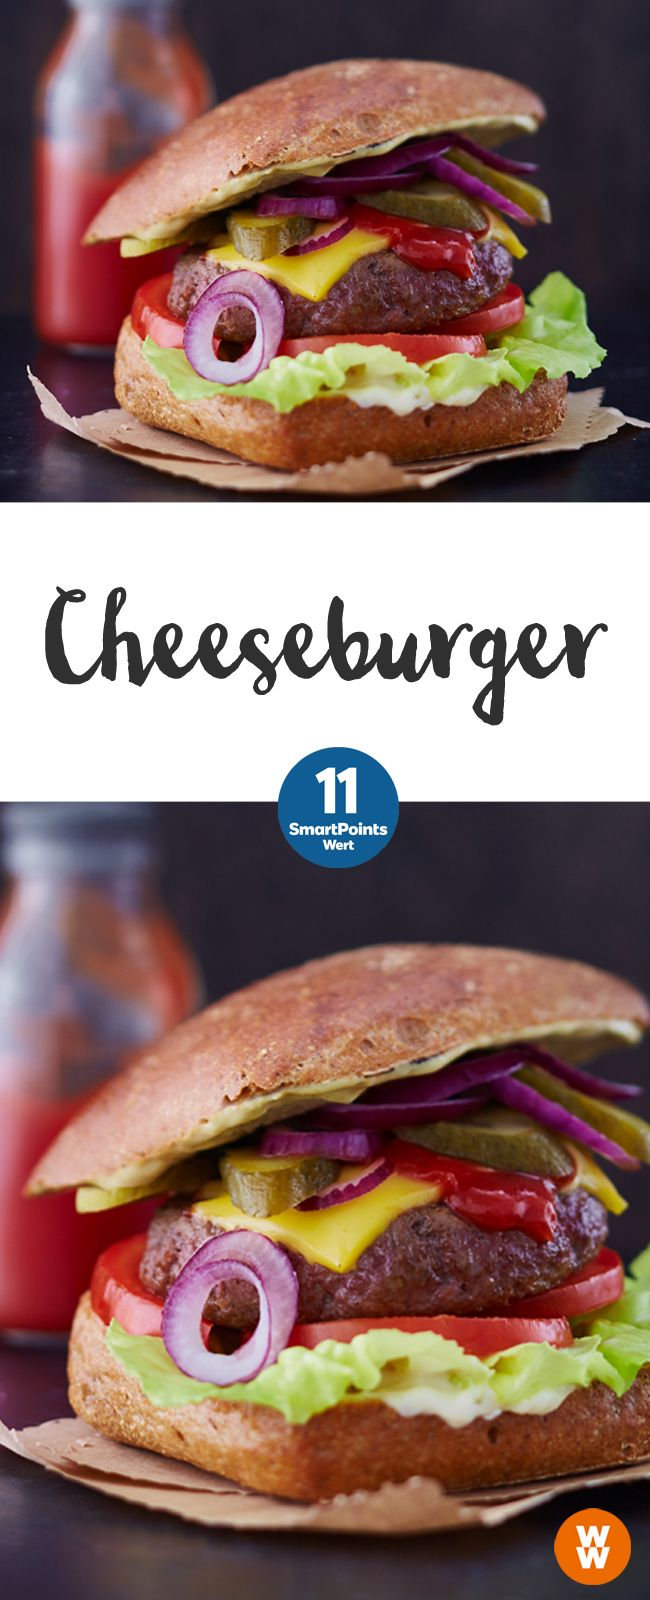 Cheeseburger, Burger, Grillen, Barbecue | Weight Watchers